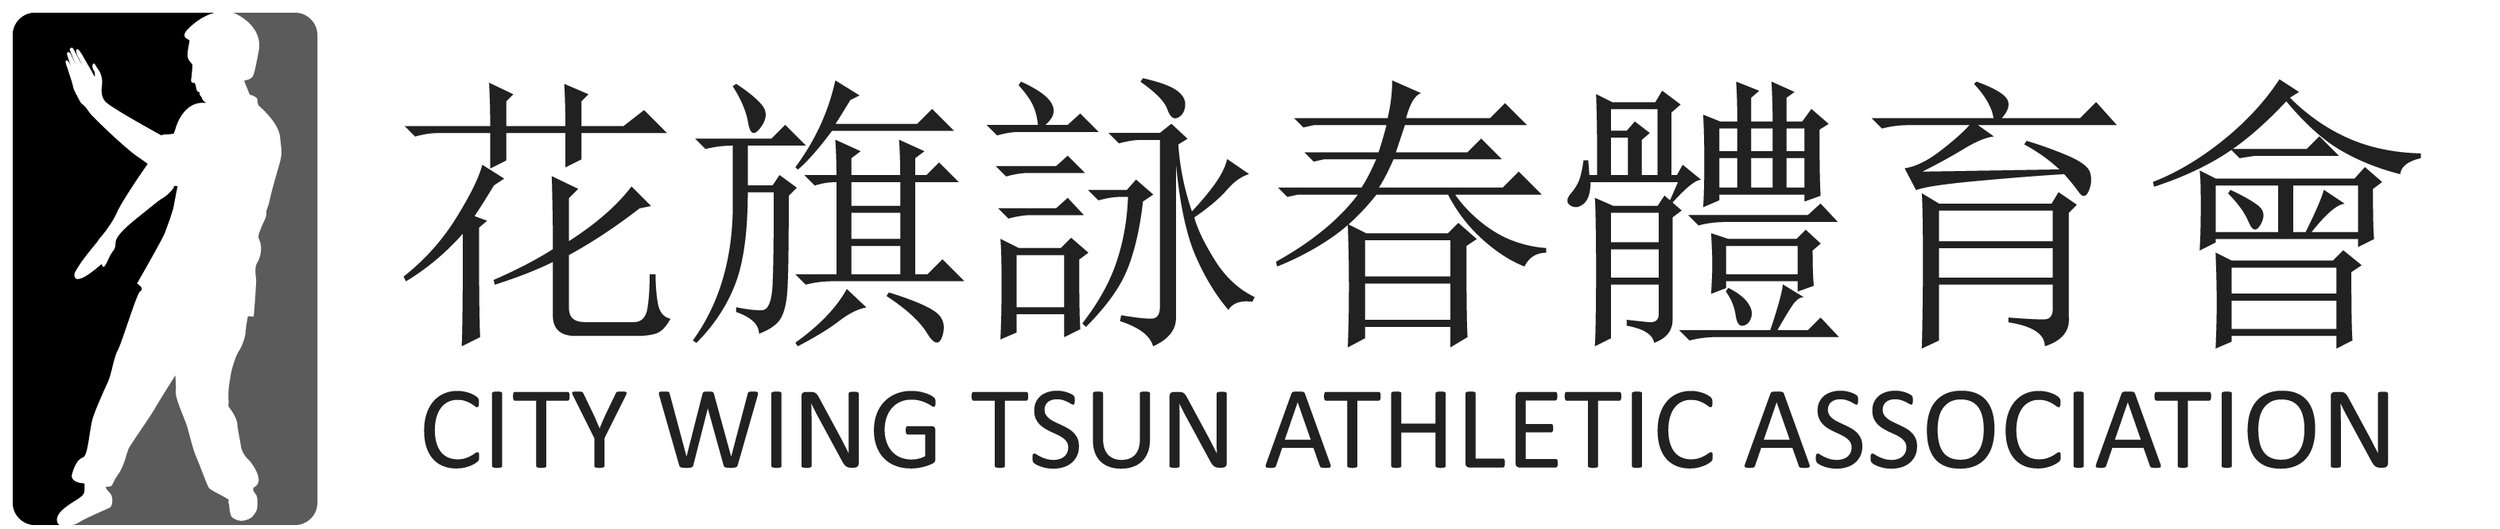 CWT ATHLETIC ASSOCIATION LOGO.jpg